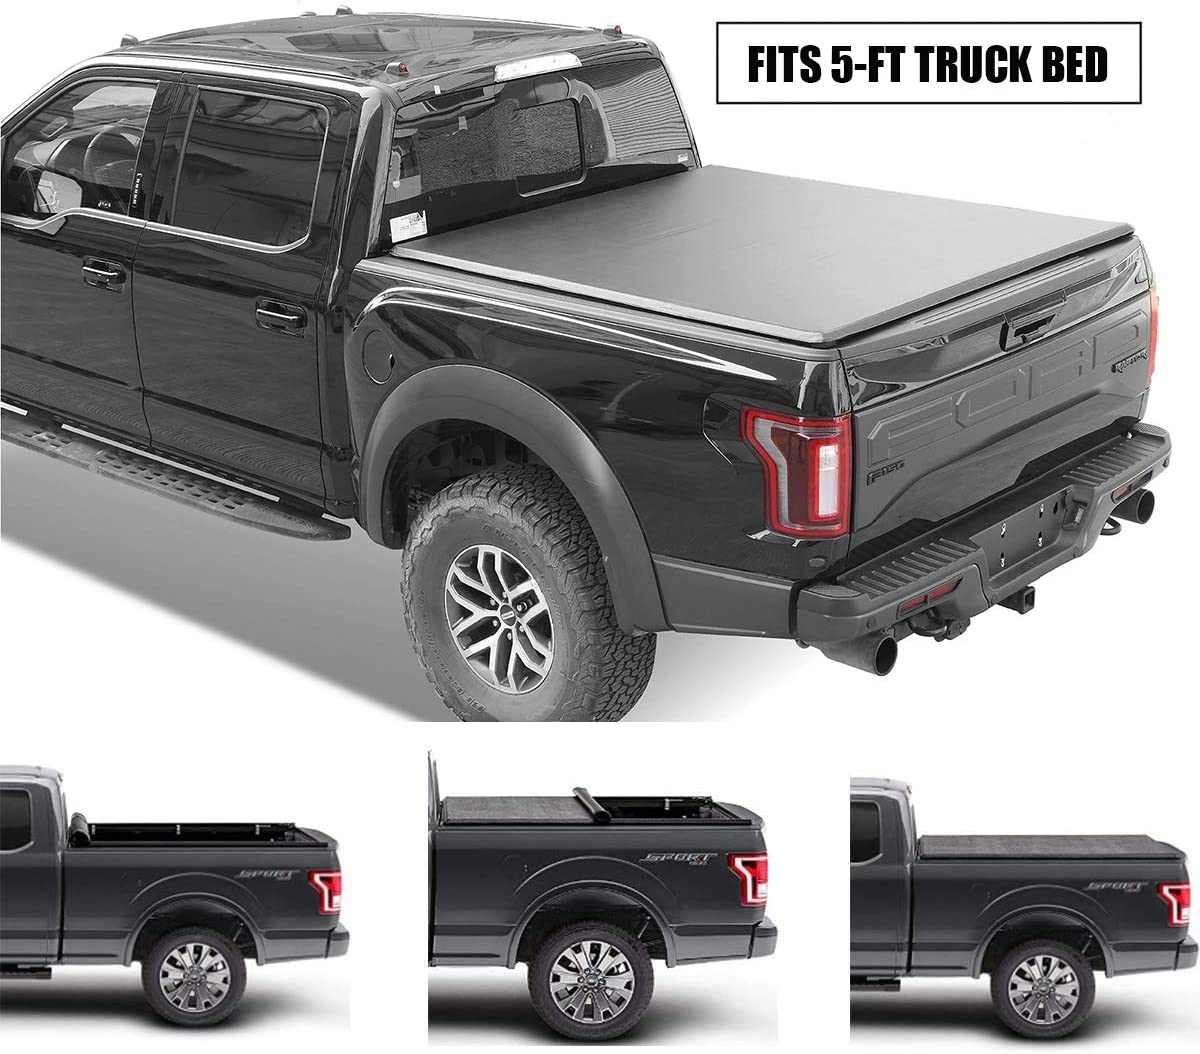 Gevog Soft Roll-Up Truck Bed Tonneau Cover Assembly for 2015-2020 Chevrolet Colorado GMC Canyon 5' (61.7